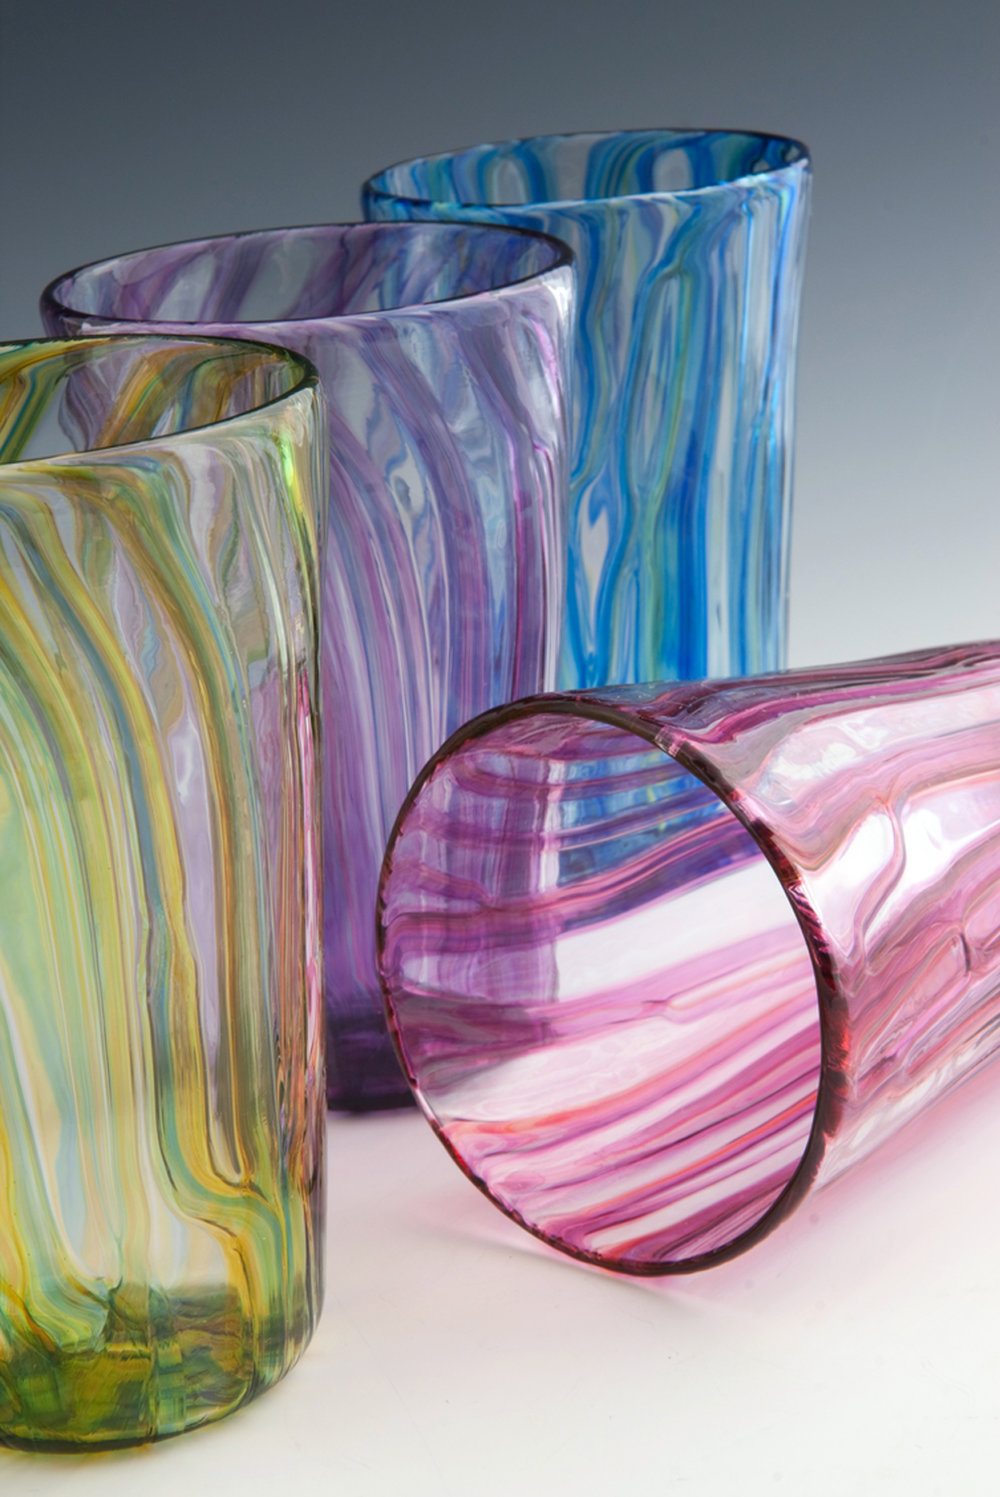 Clancy Designs - Jamestown, RI.  Colorful glasses, pitchers & bowls in a variety of patterns & textures.